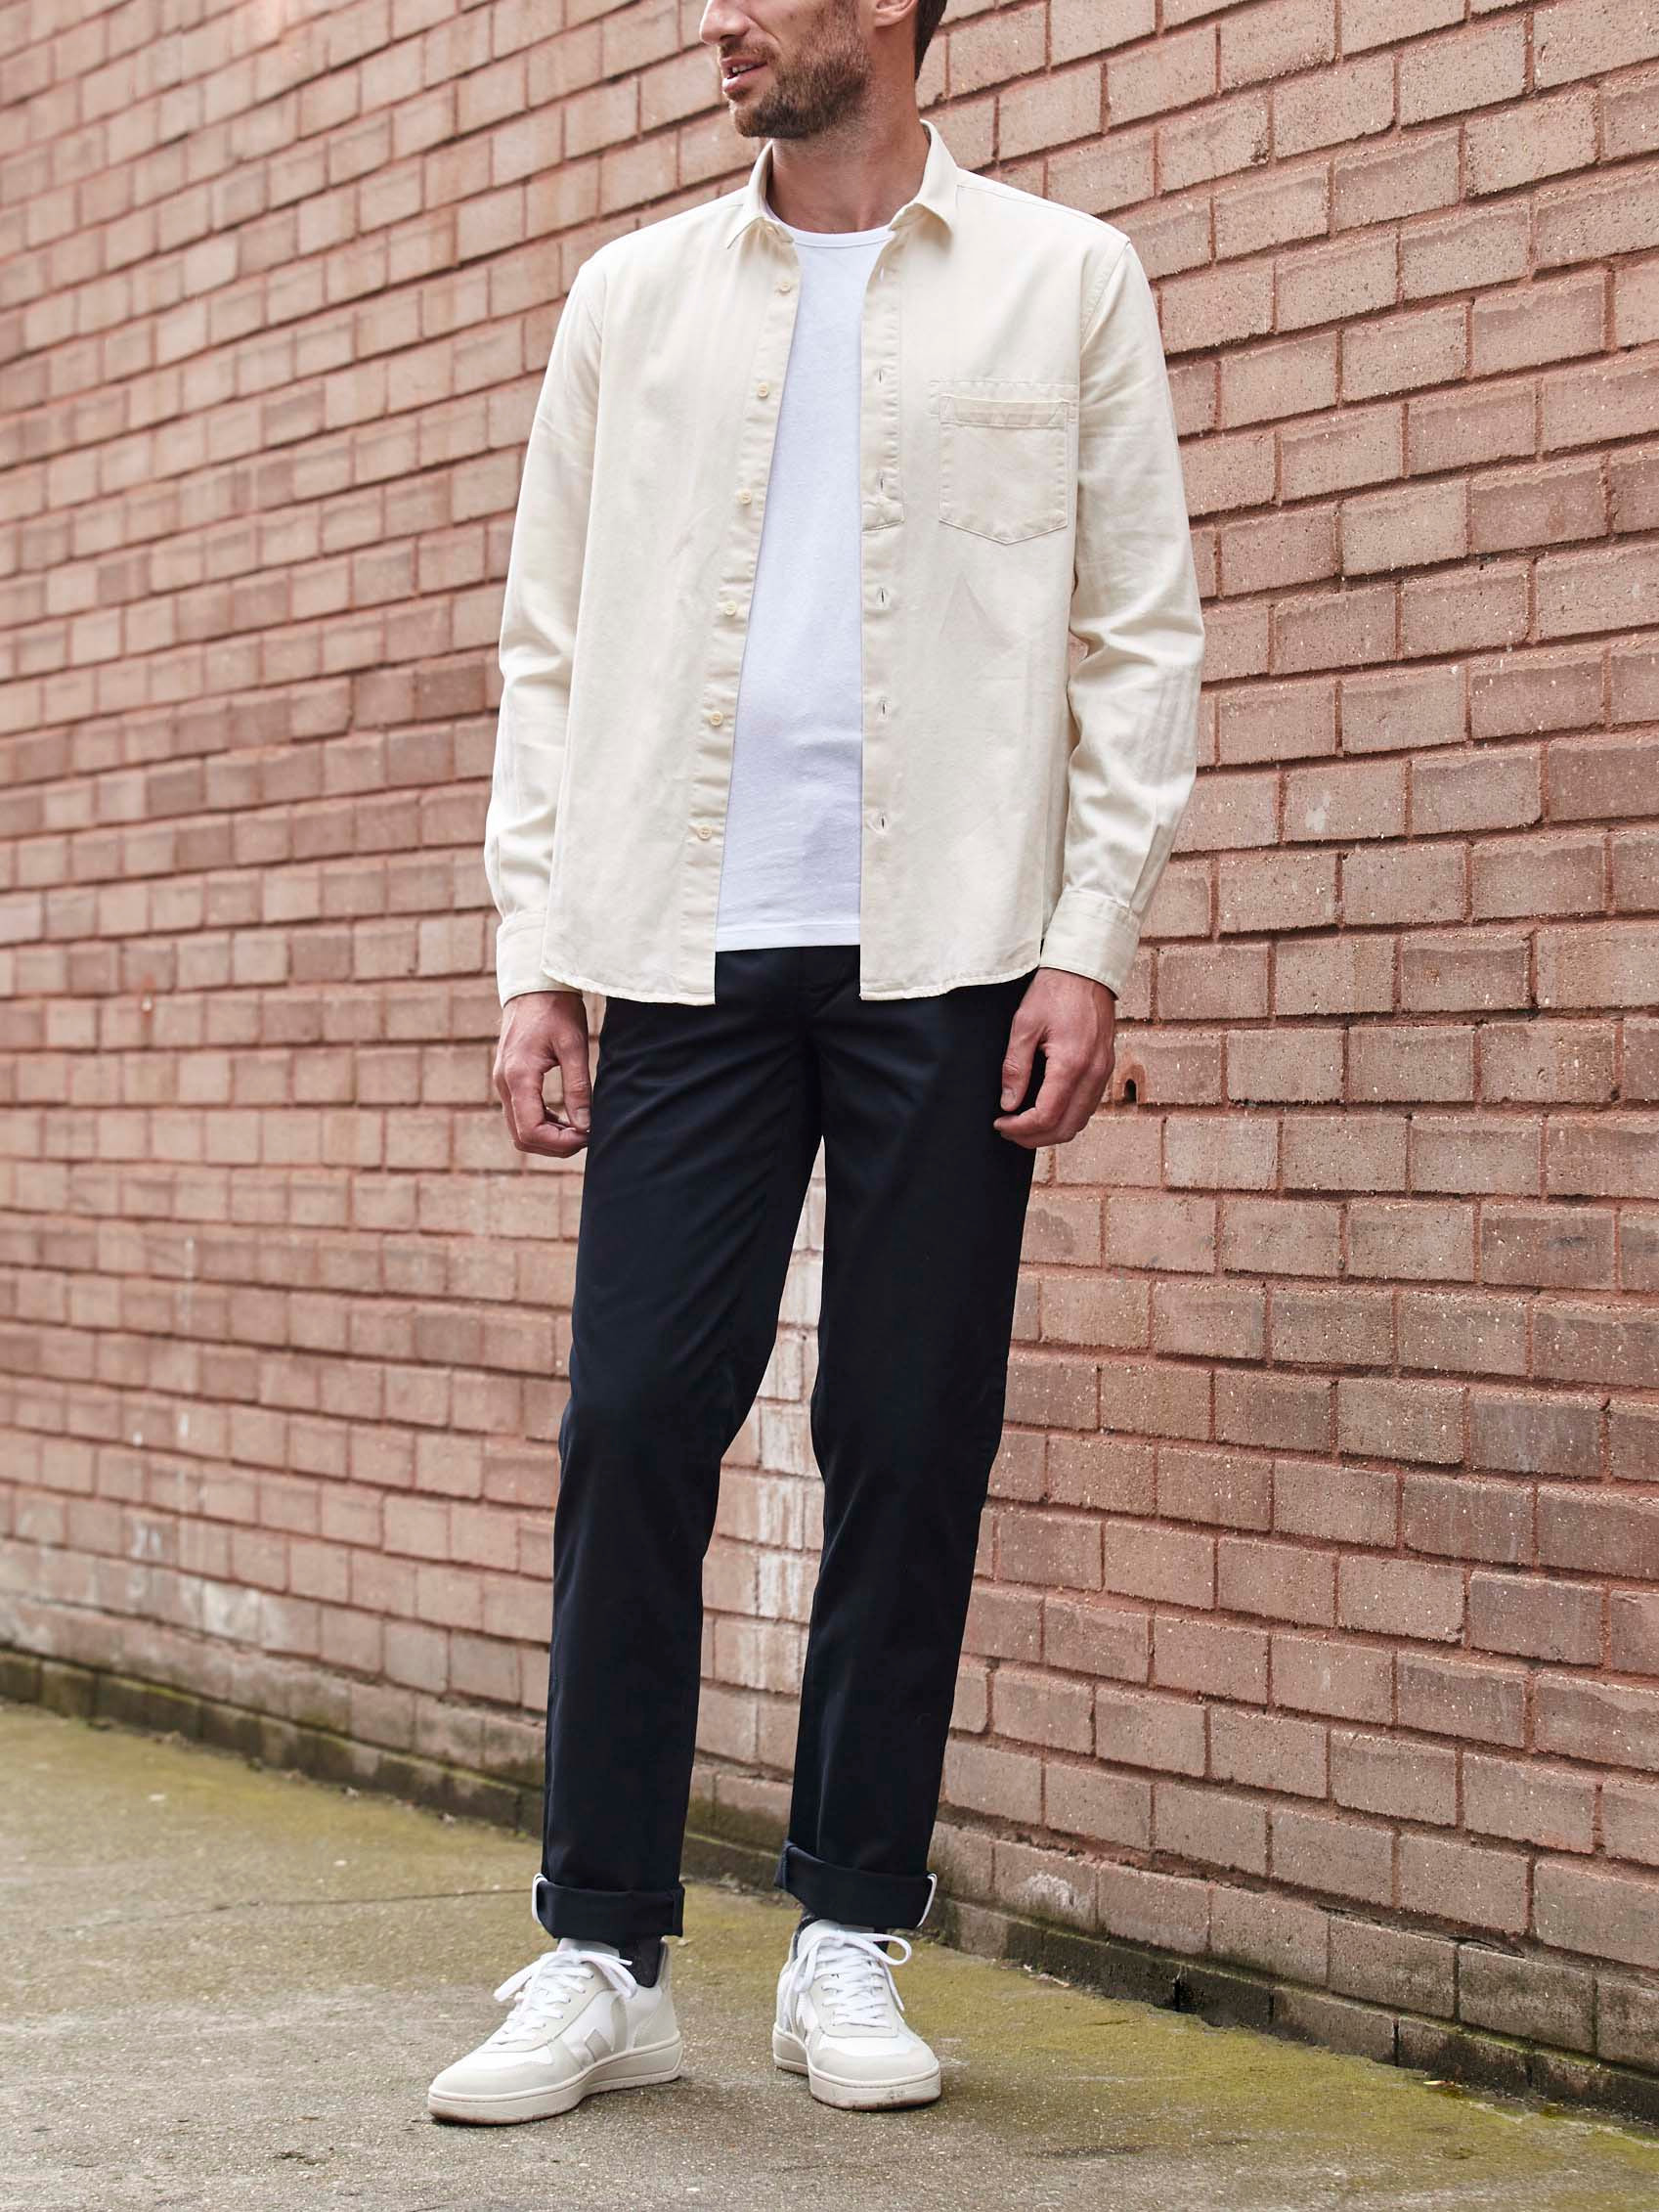 Men's outfit idea for 2021 with pale coloured casual shirt, white crew neck t-shirt, navy chinos, white trainers. Suitable for spring, summer and autumn.